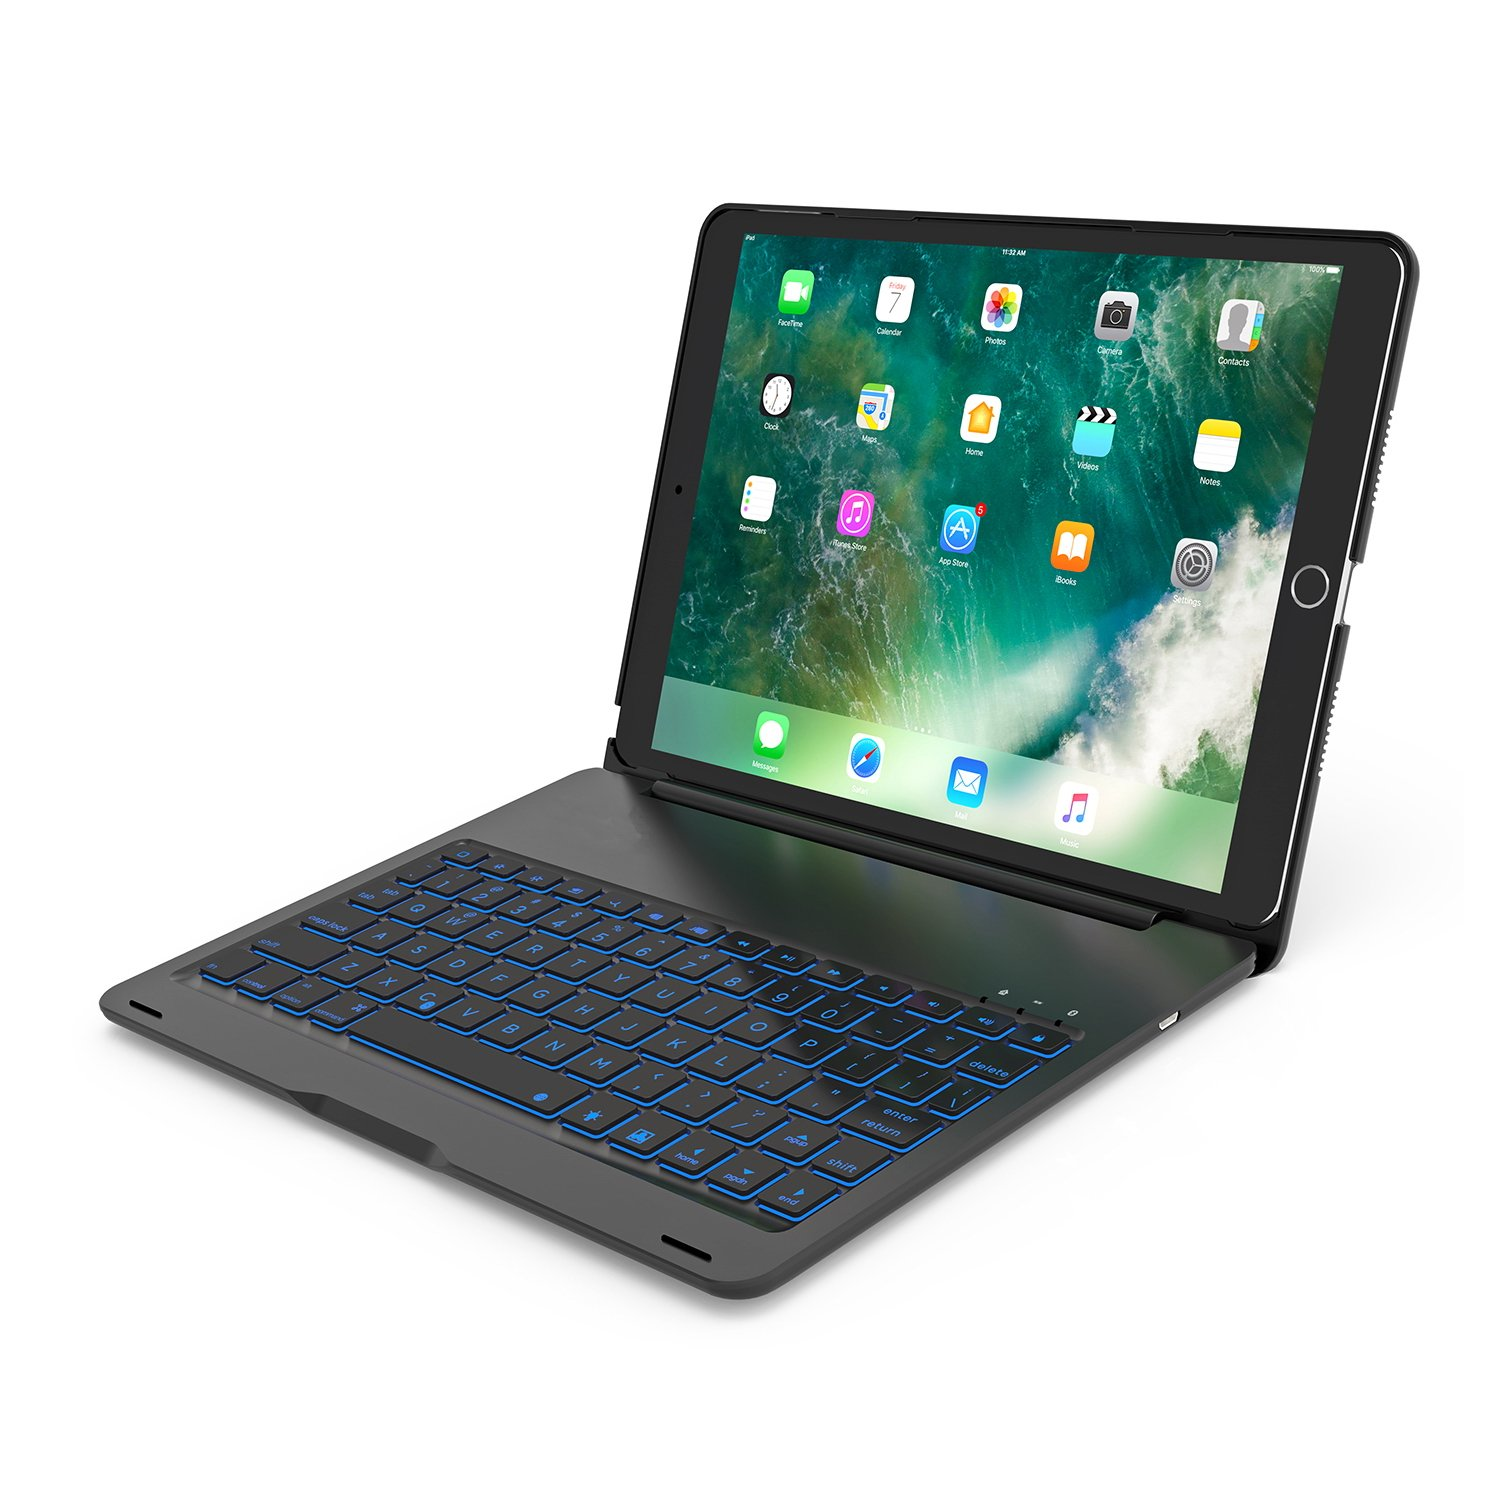 iPad Pro 10.5 Case With Keyboard,7 Colors Led Backlit,Wireless Bluetooth Folio Keyboard Hard Shell Cover -Ultra Slim,Portable,Protective&Aluminum Alloy Material(Black)